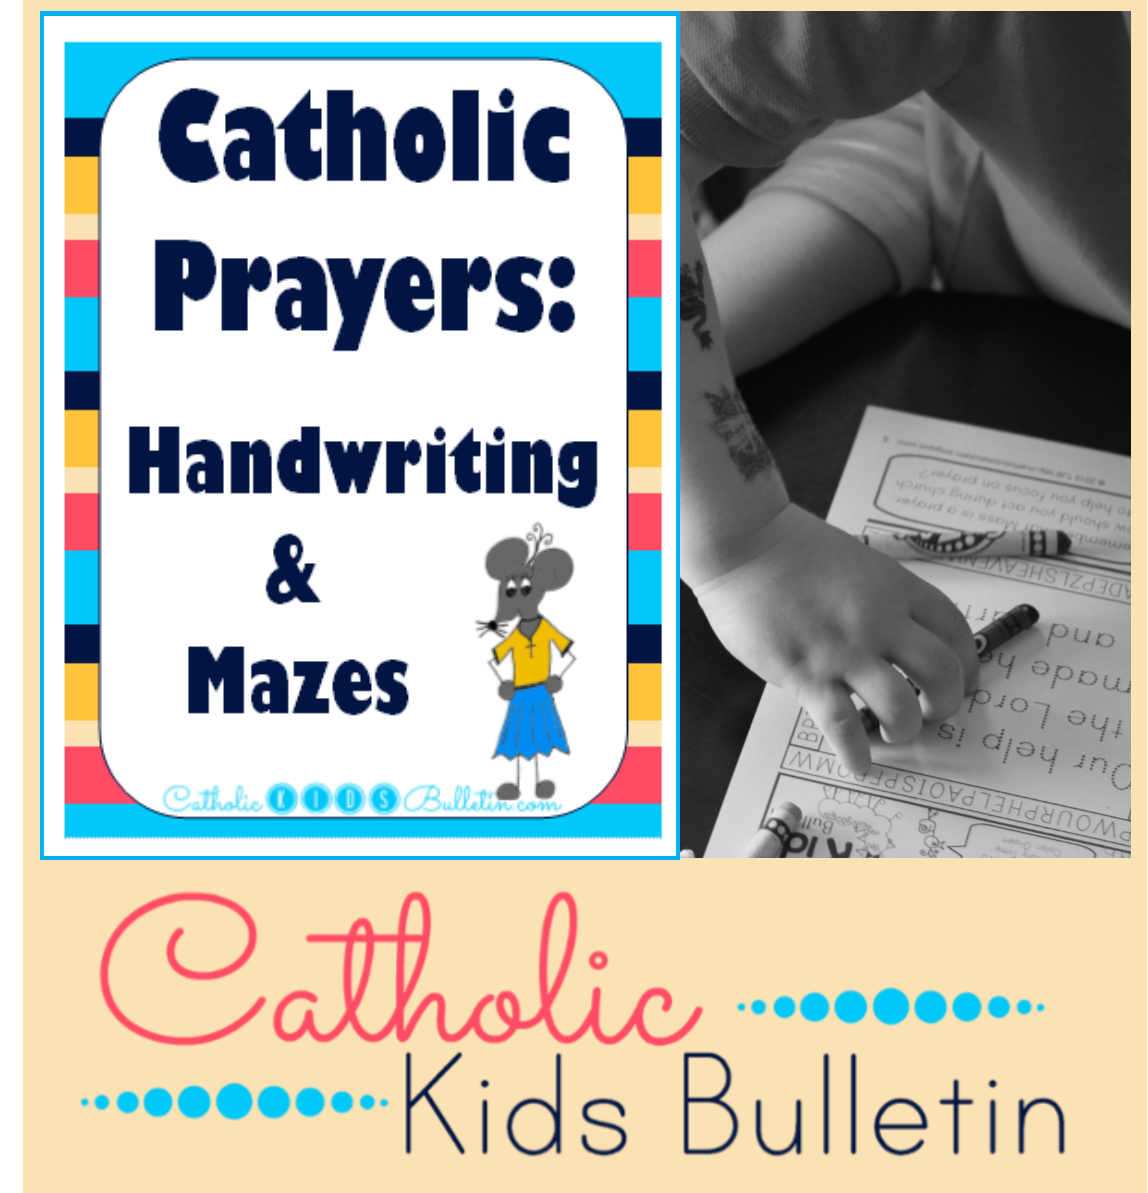 Catholic Kids Catholic Prayer Handwriting And Mazes Our Father Hail Mary Sign Of The Cross